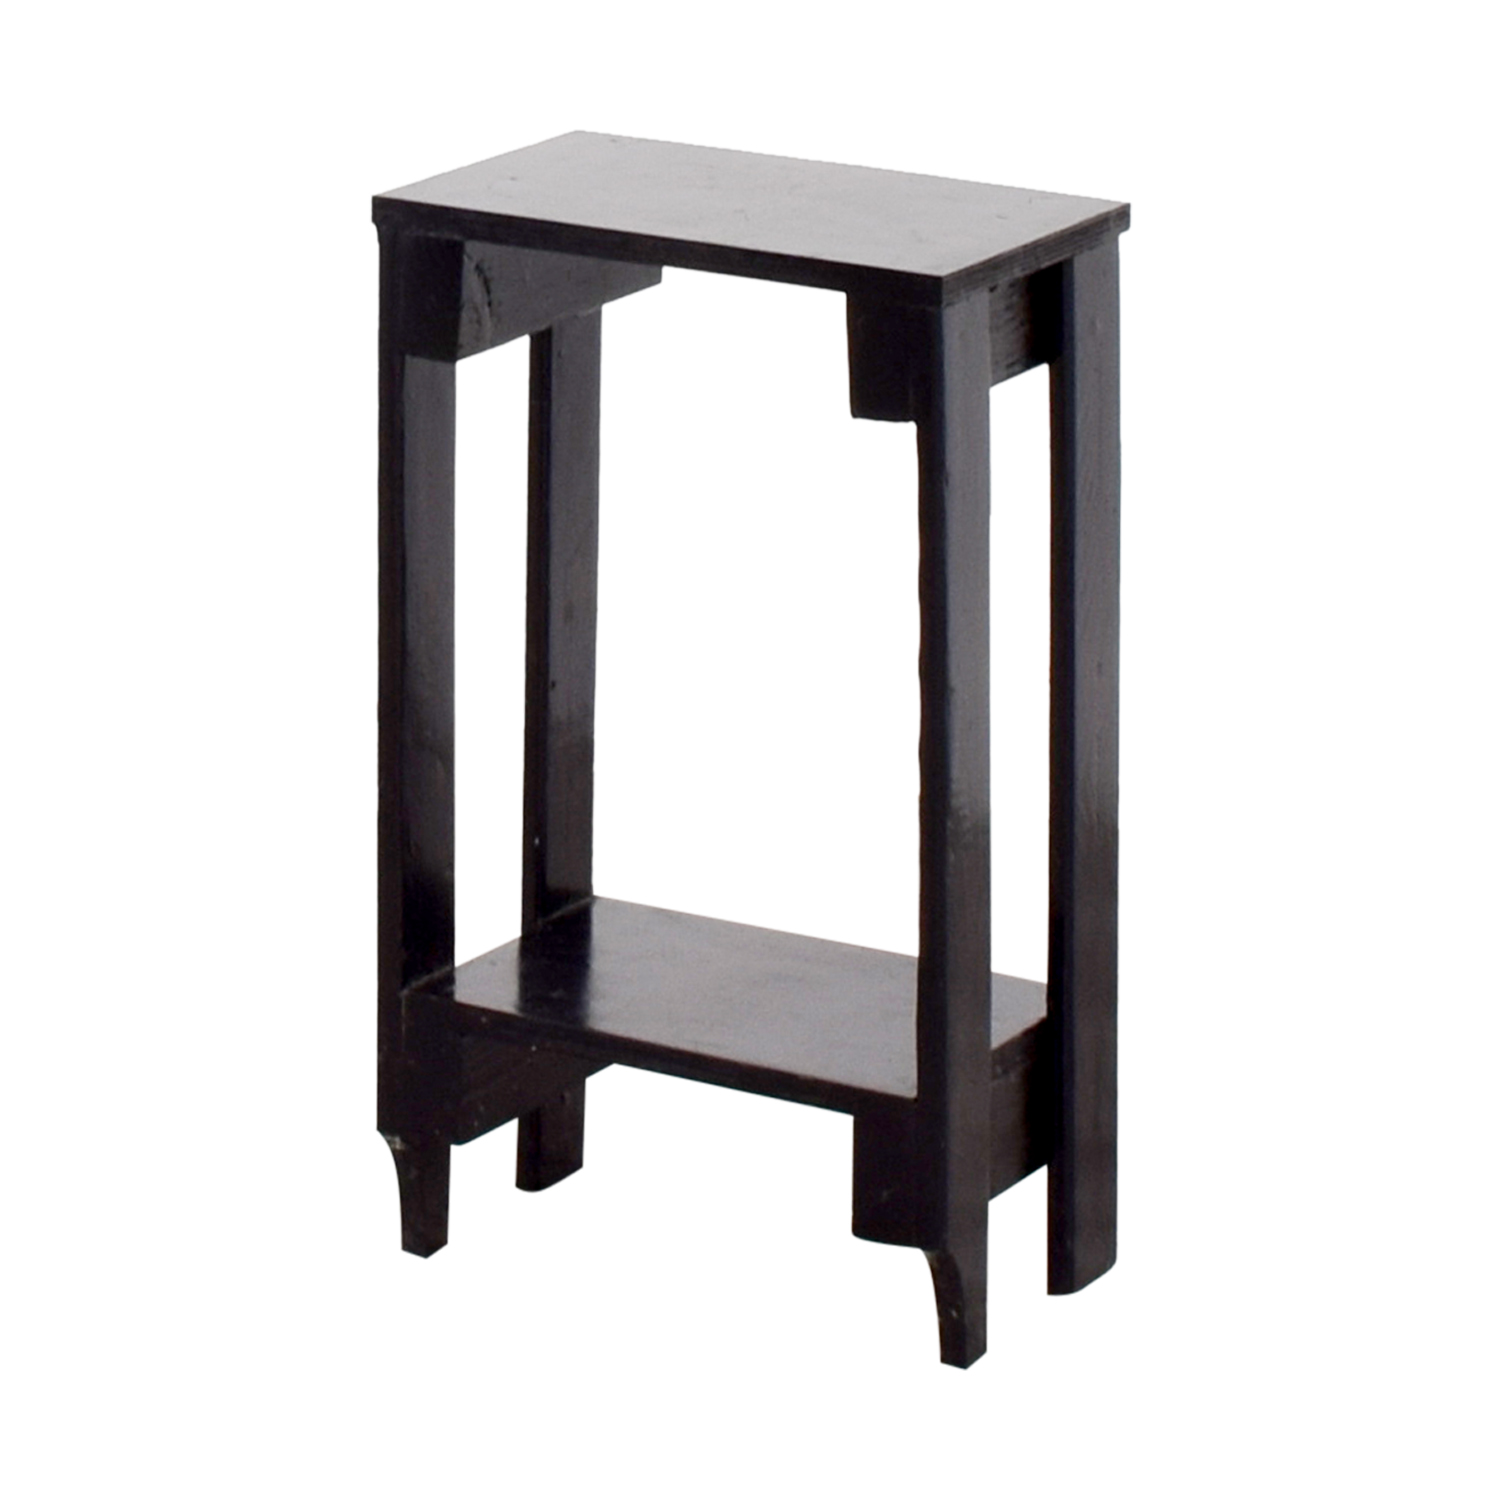 modern table ideas surprising small accent tables with awesome for bedroom refer easy the eye french solid oak door thresholds yuma furniture rectangular marble dining hampton bay